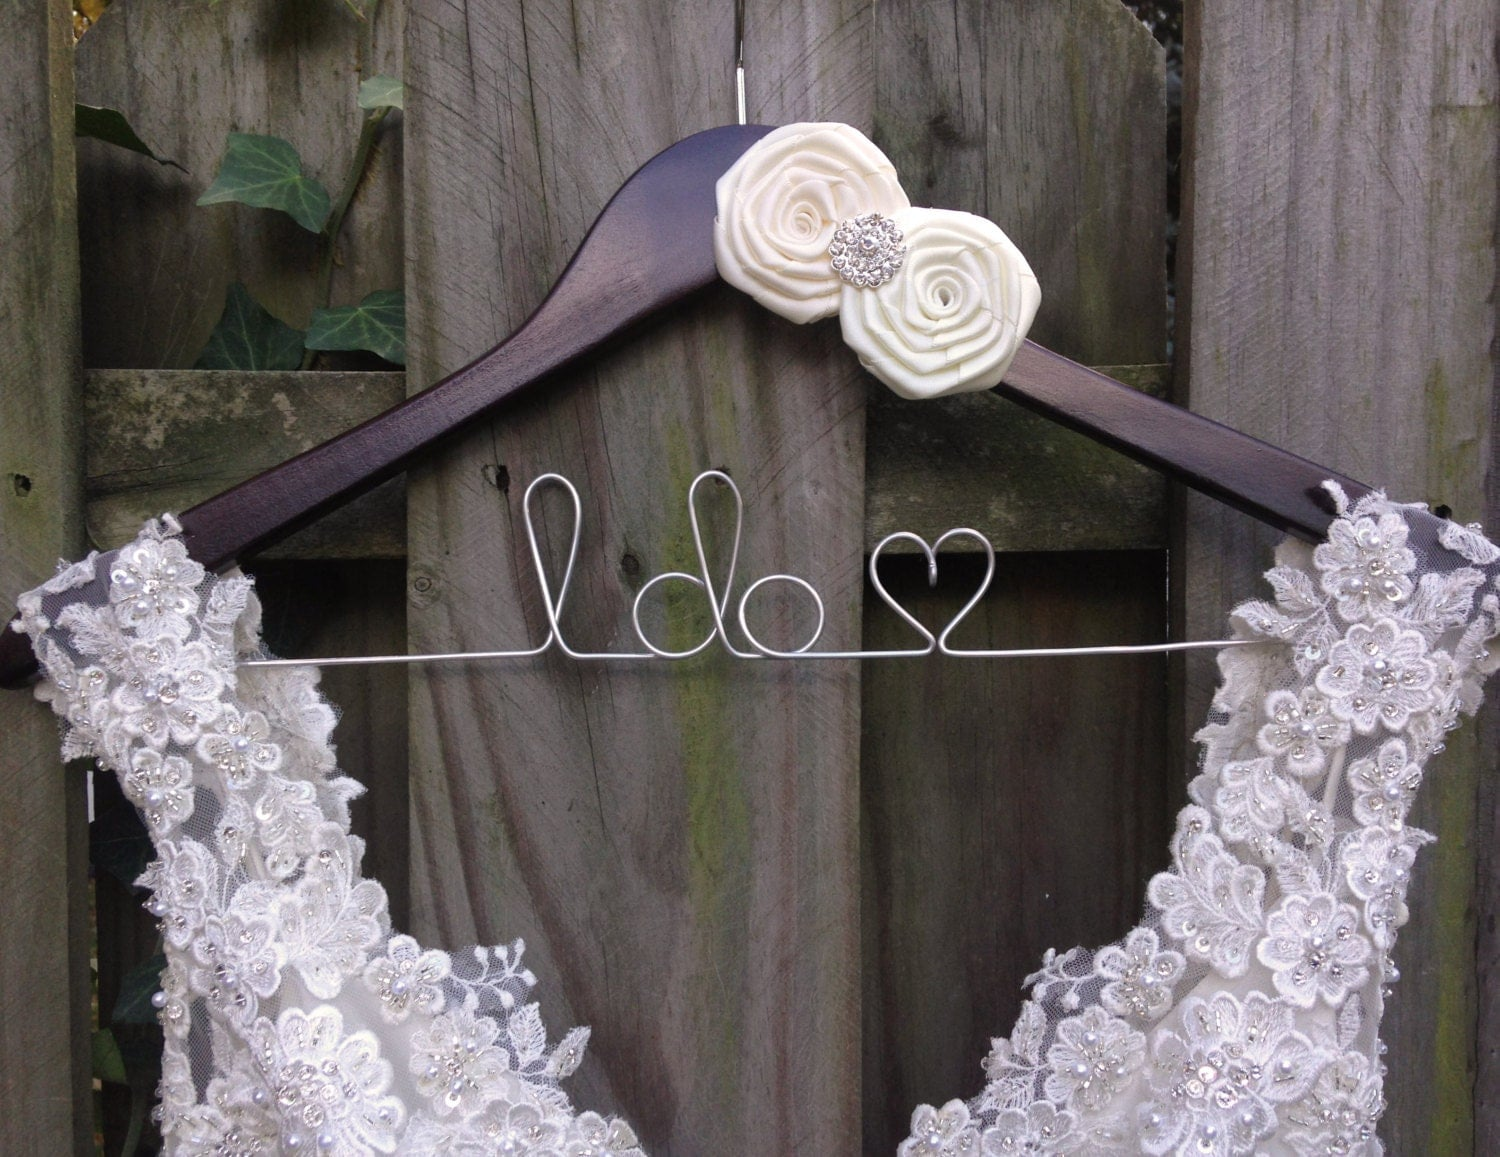 Bride Hanger Bridal Hanger Wedding Dress Hanger